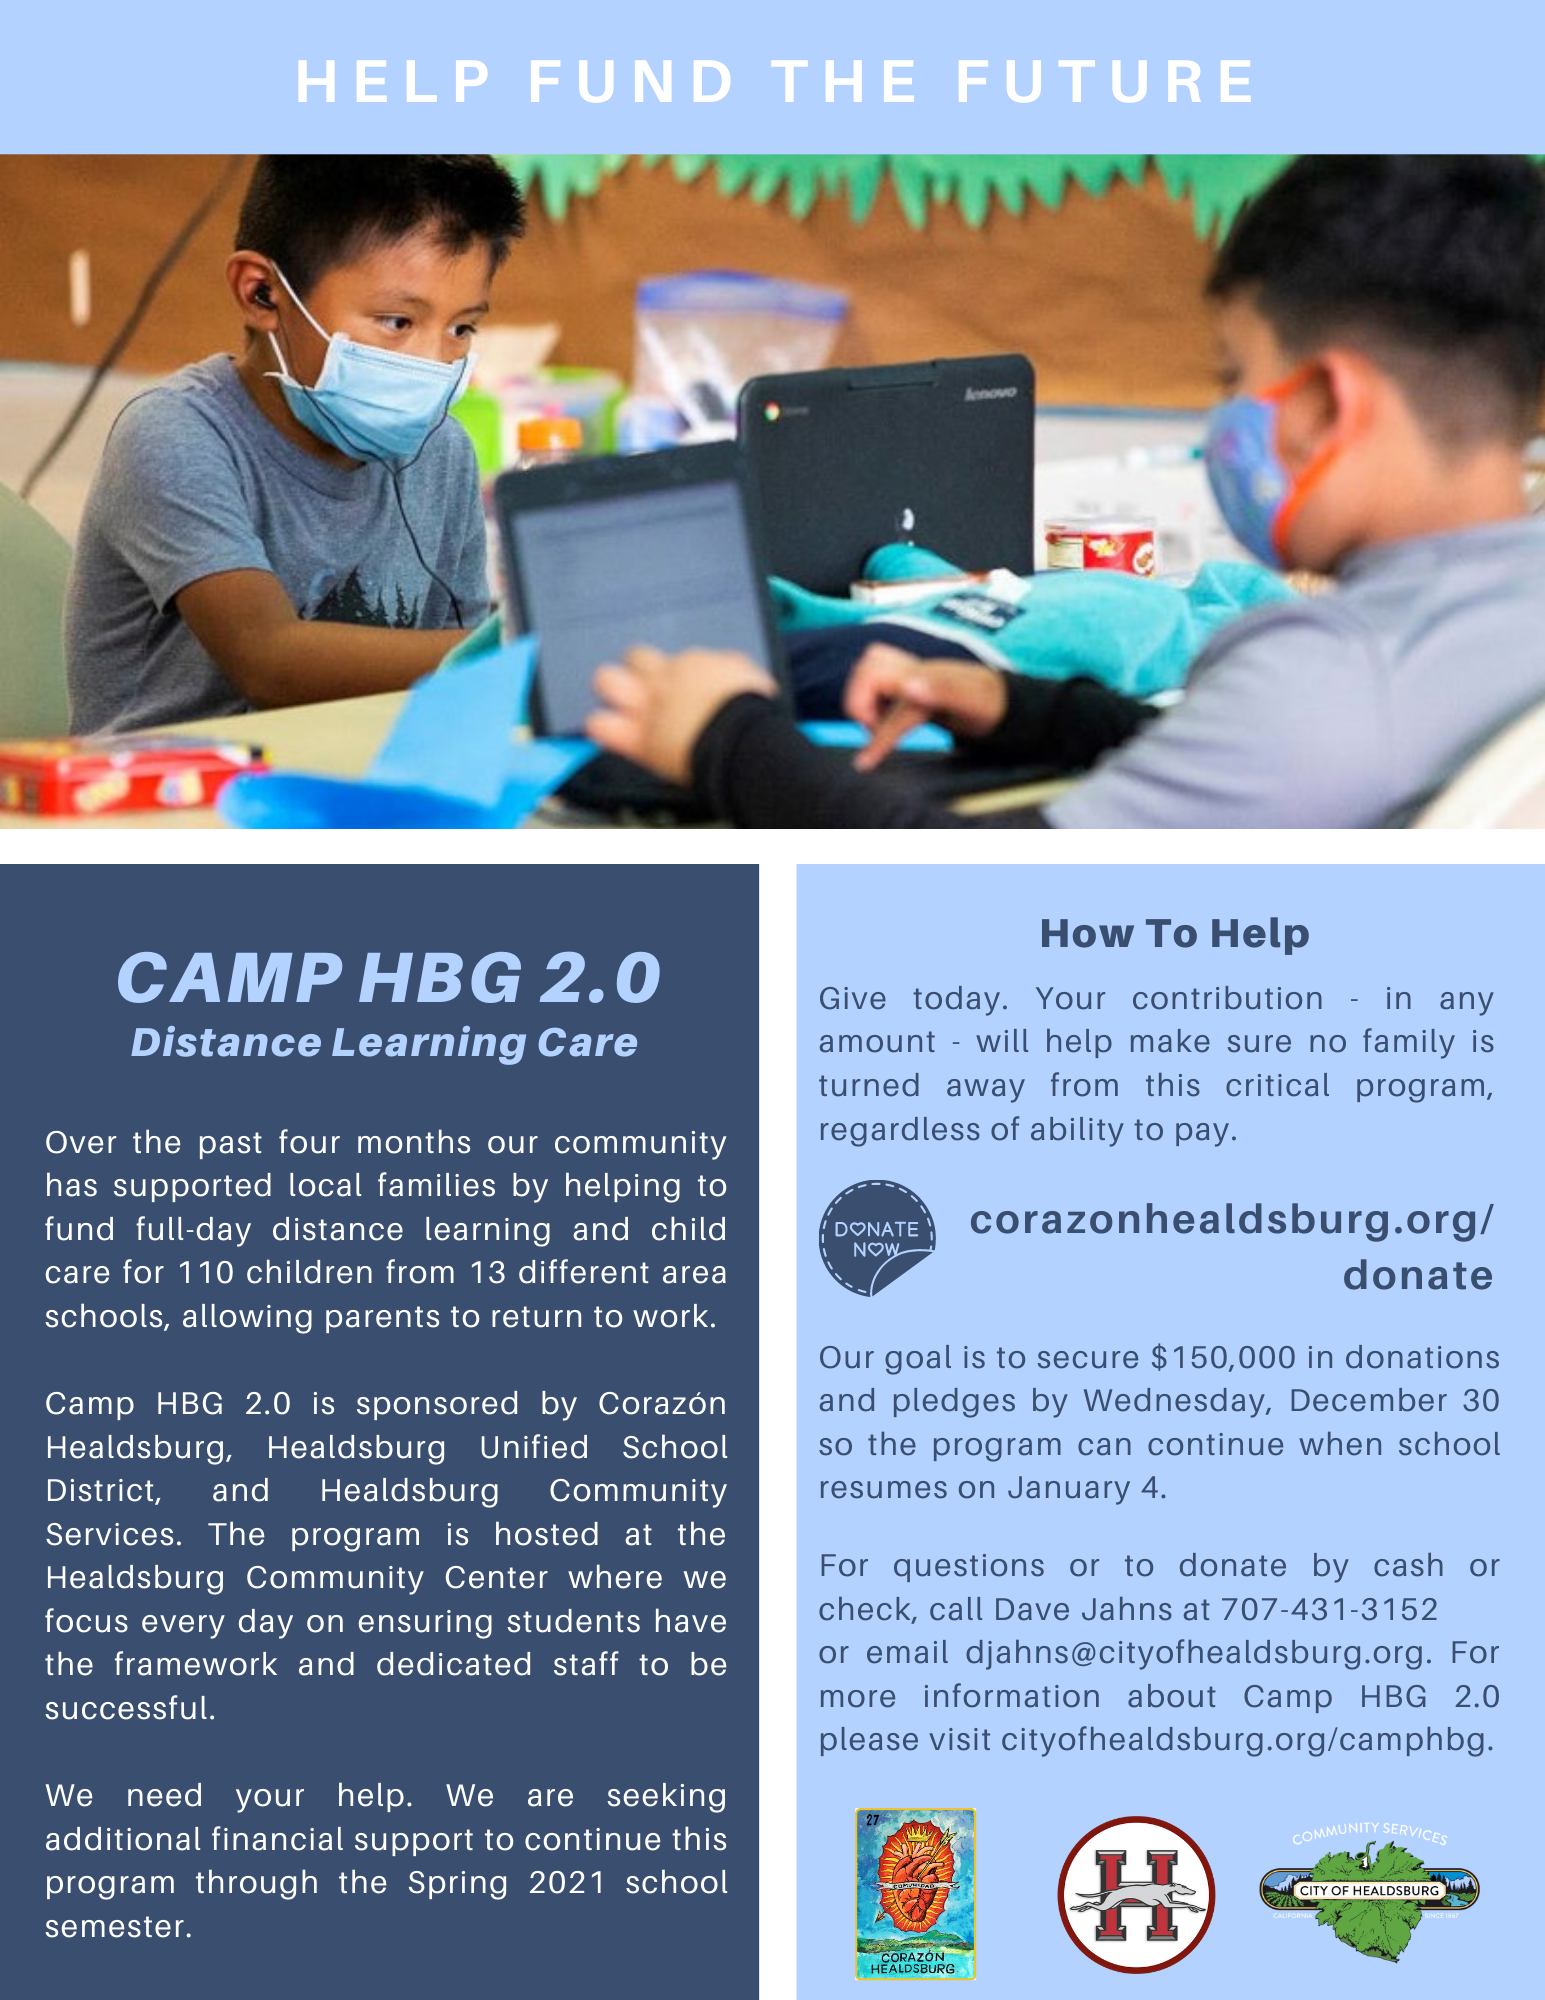 Camp HBG 2.0 Fundraising Flyer 2021